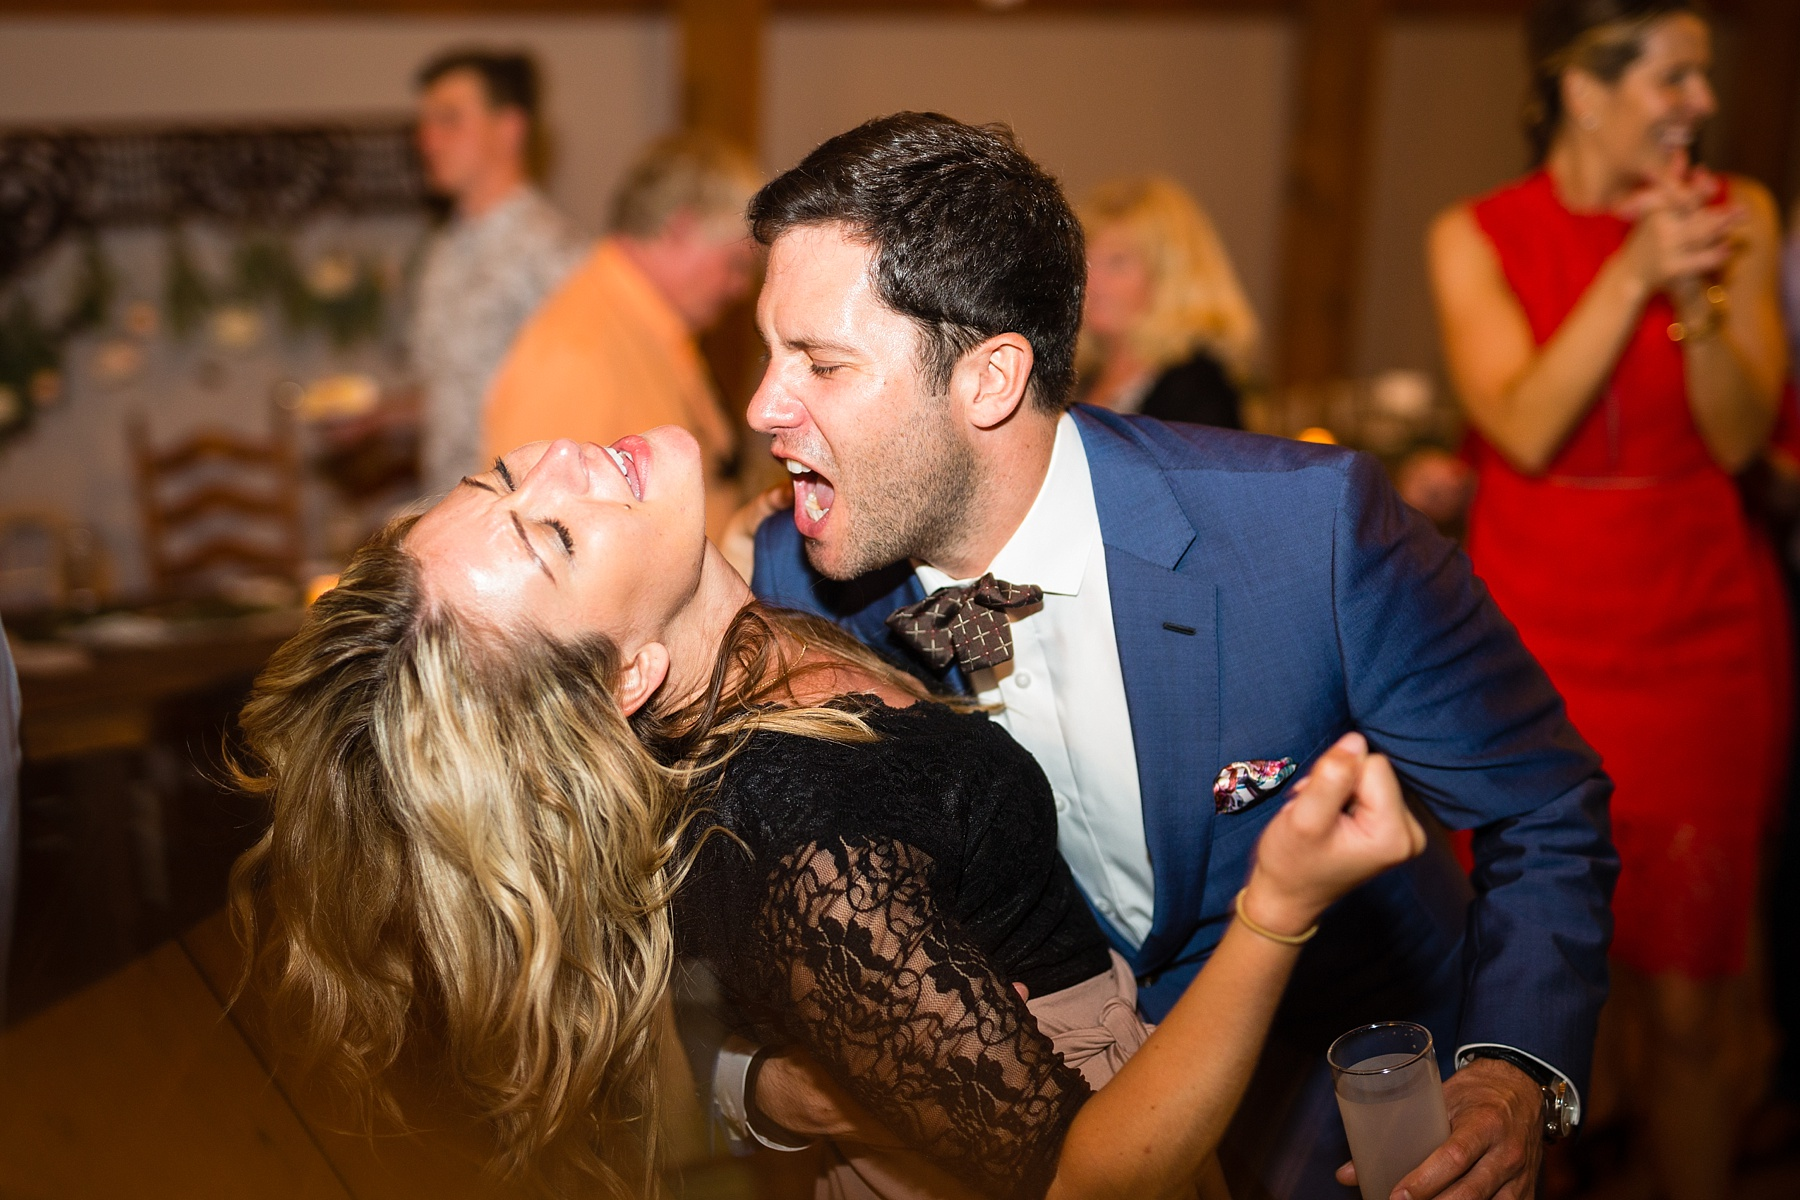 Brandon_Shafer_Photography_Traverse_City_Wedding_0063.jpg